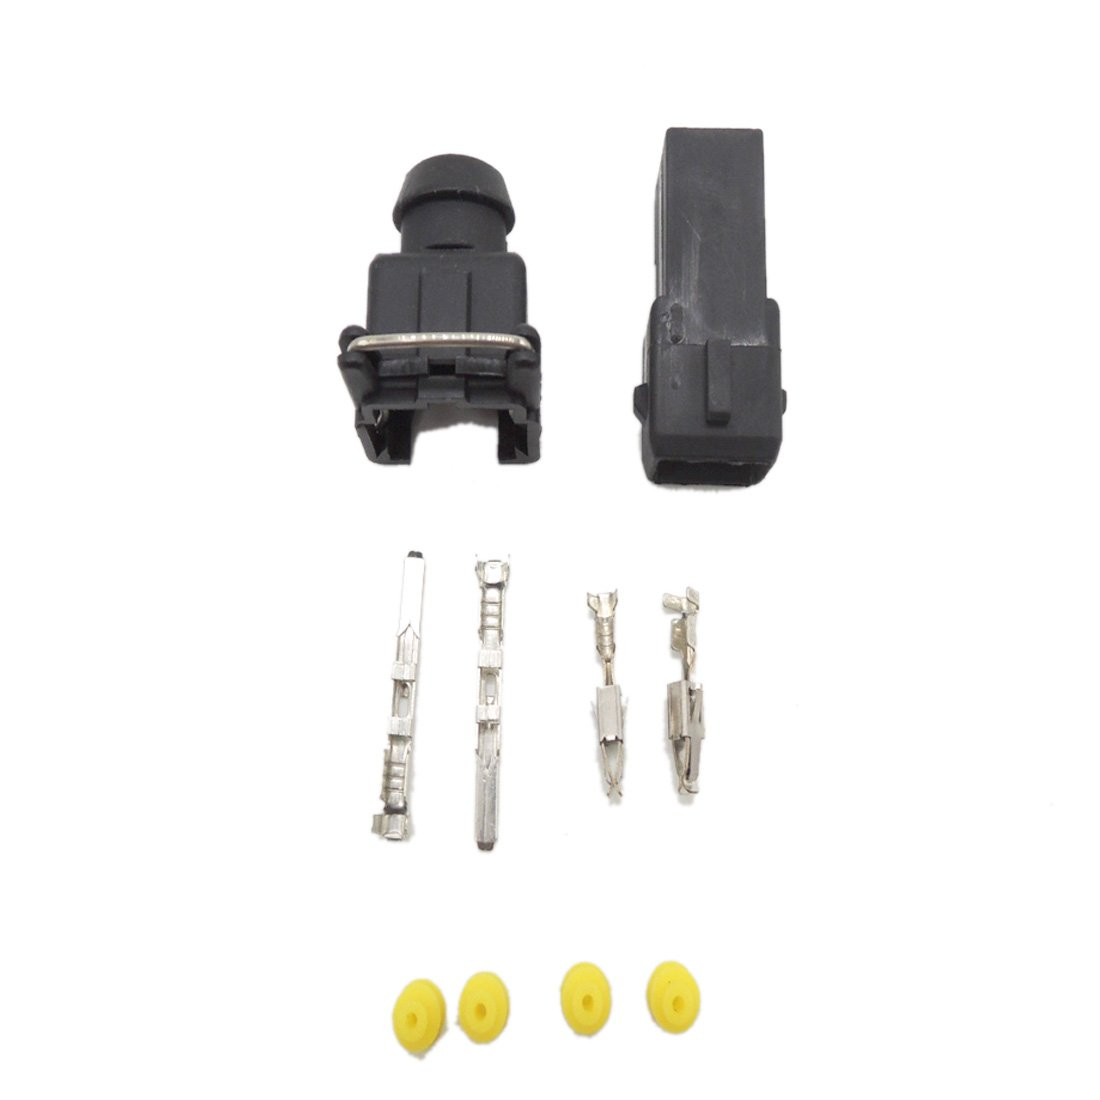 10 set EV1 Fuel Injector Plug nozzle Car Waterproof 2 Pin way Electrical Wire Connector Plug automobile Connectors for cars Ogry